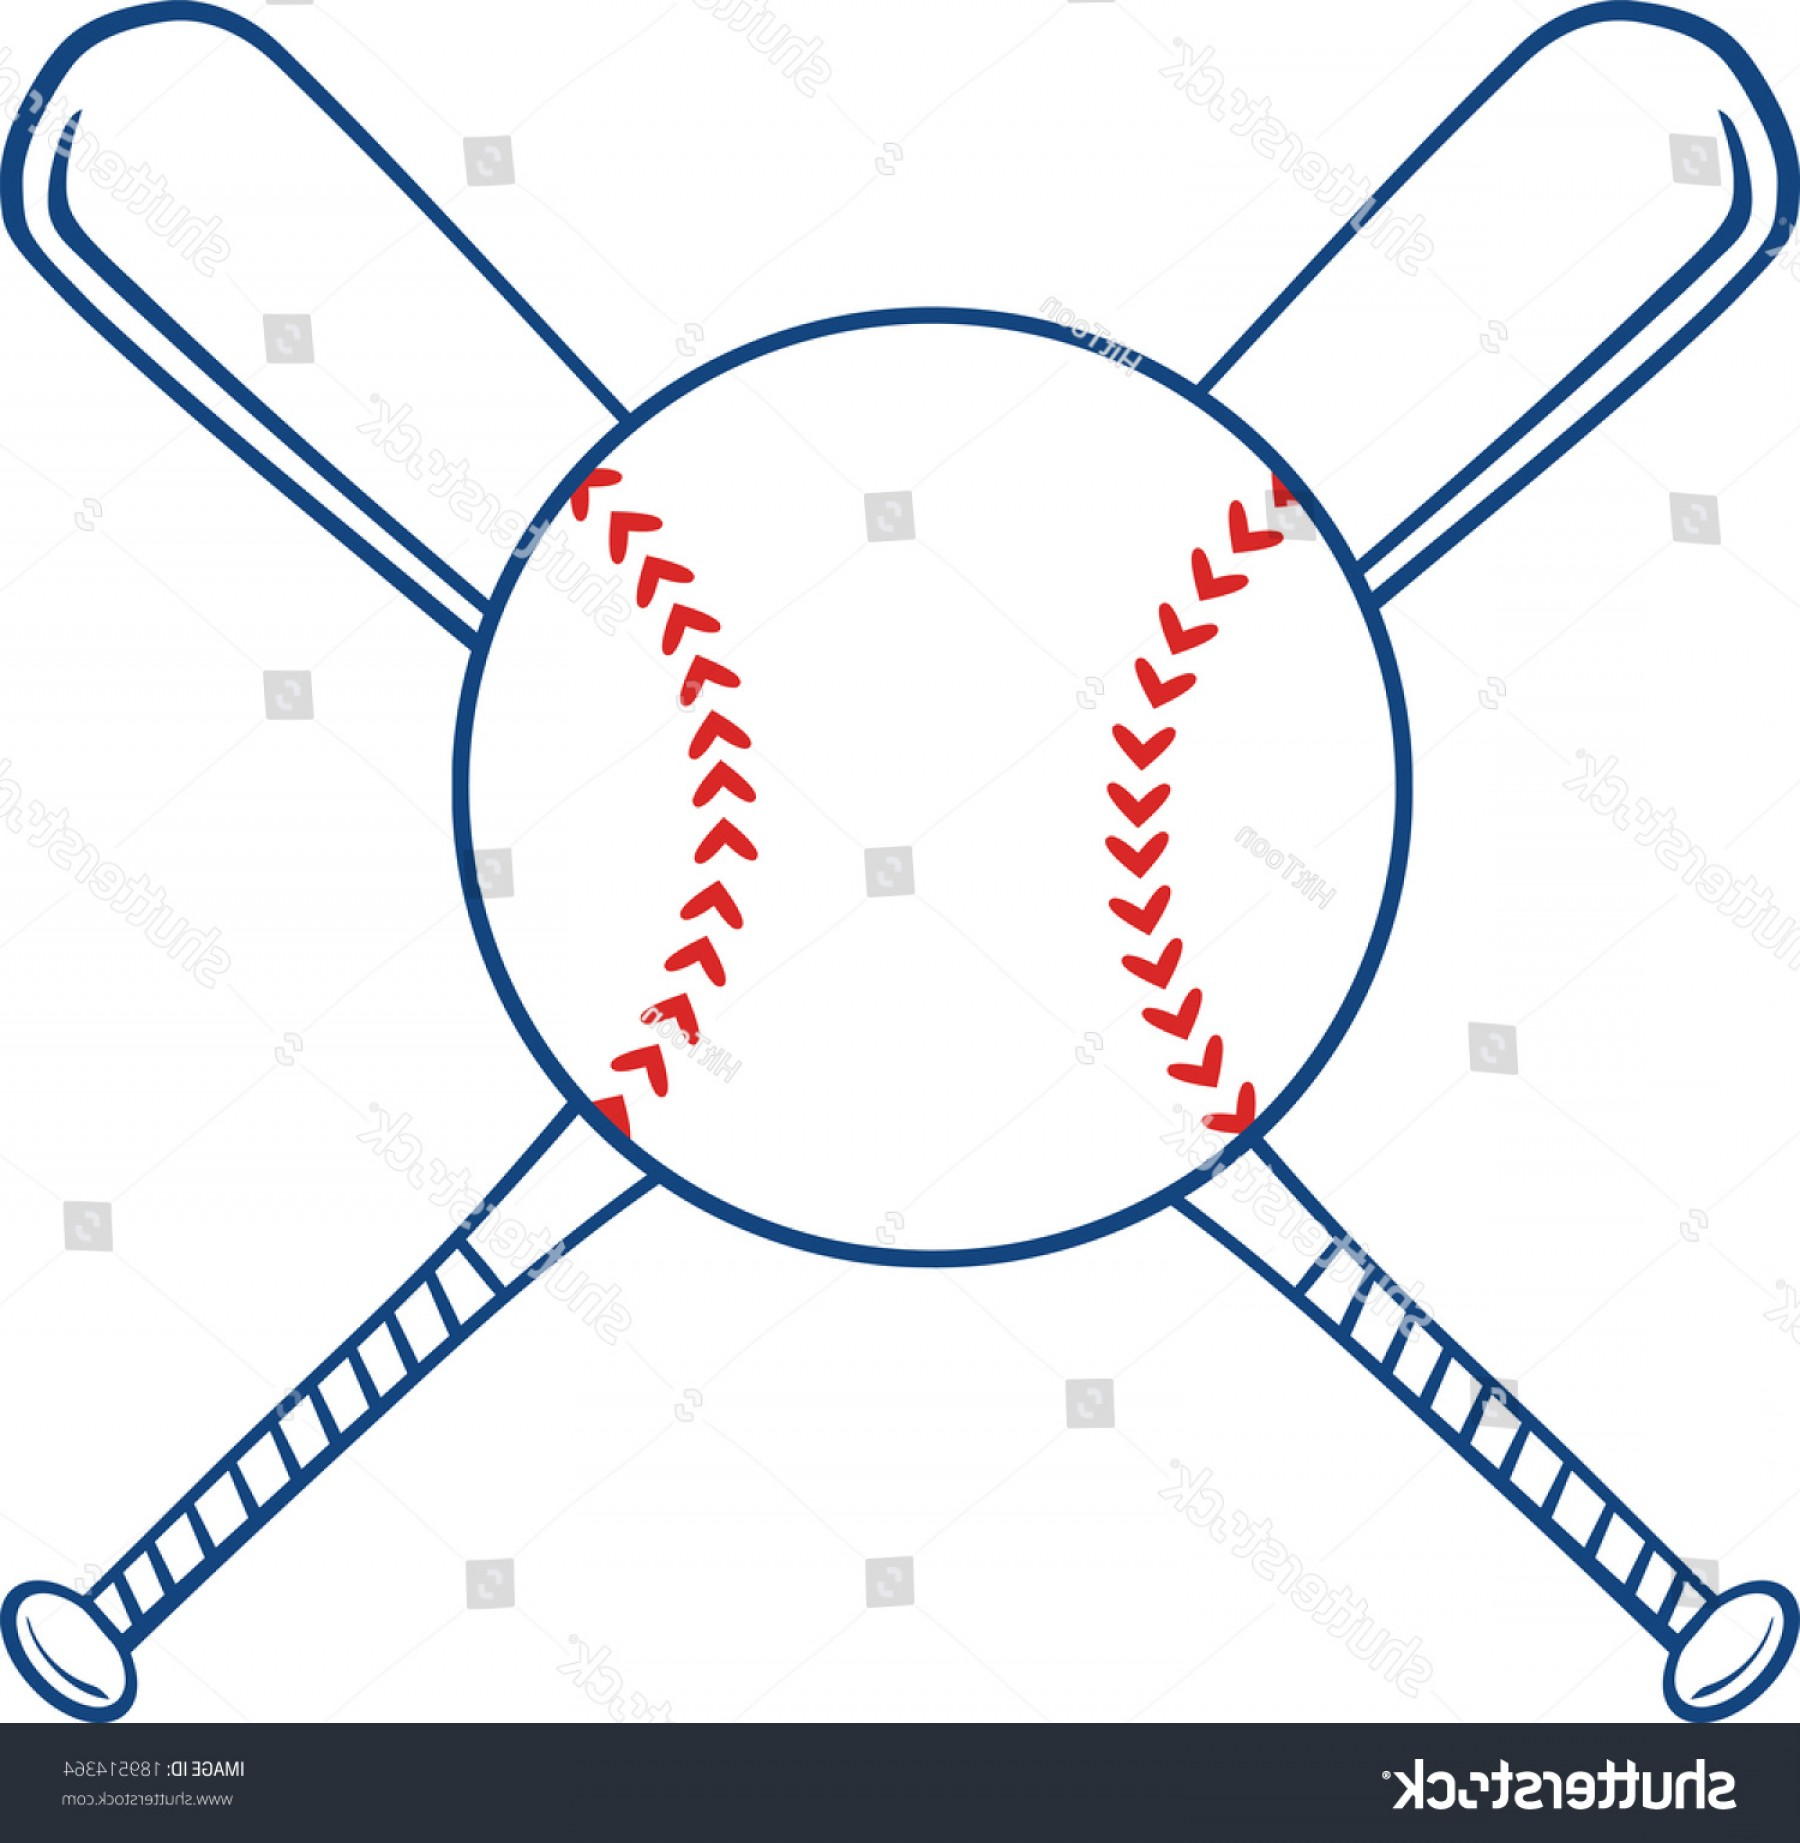 Vector Baseball Cross: Two Crossed Baseball Bats Ball Vector